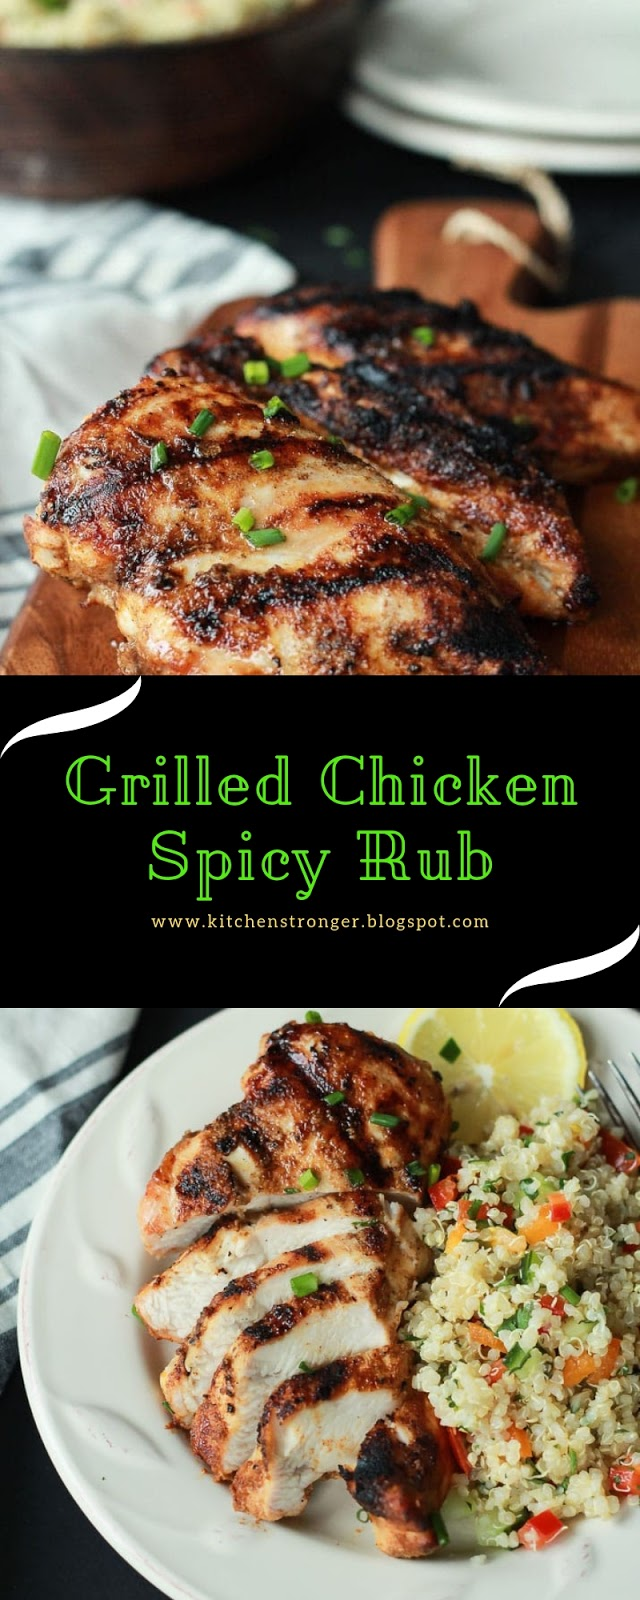 Grilled Chicken Spicy Rub